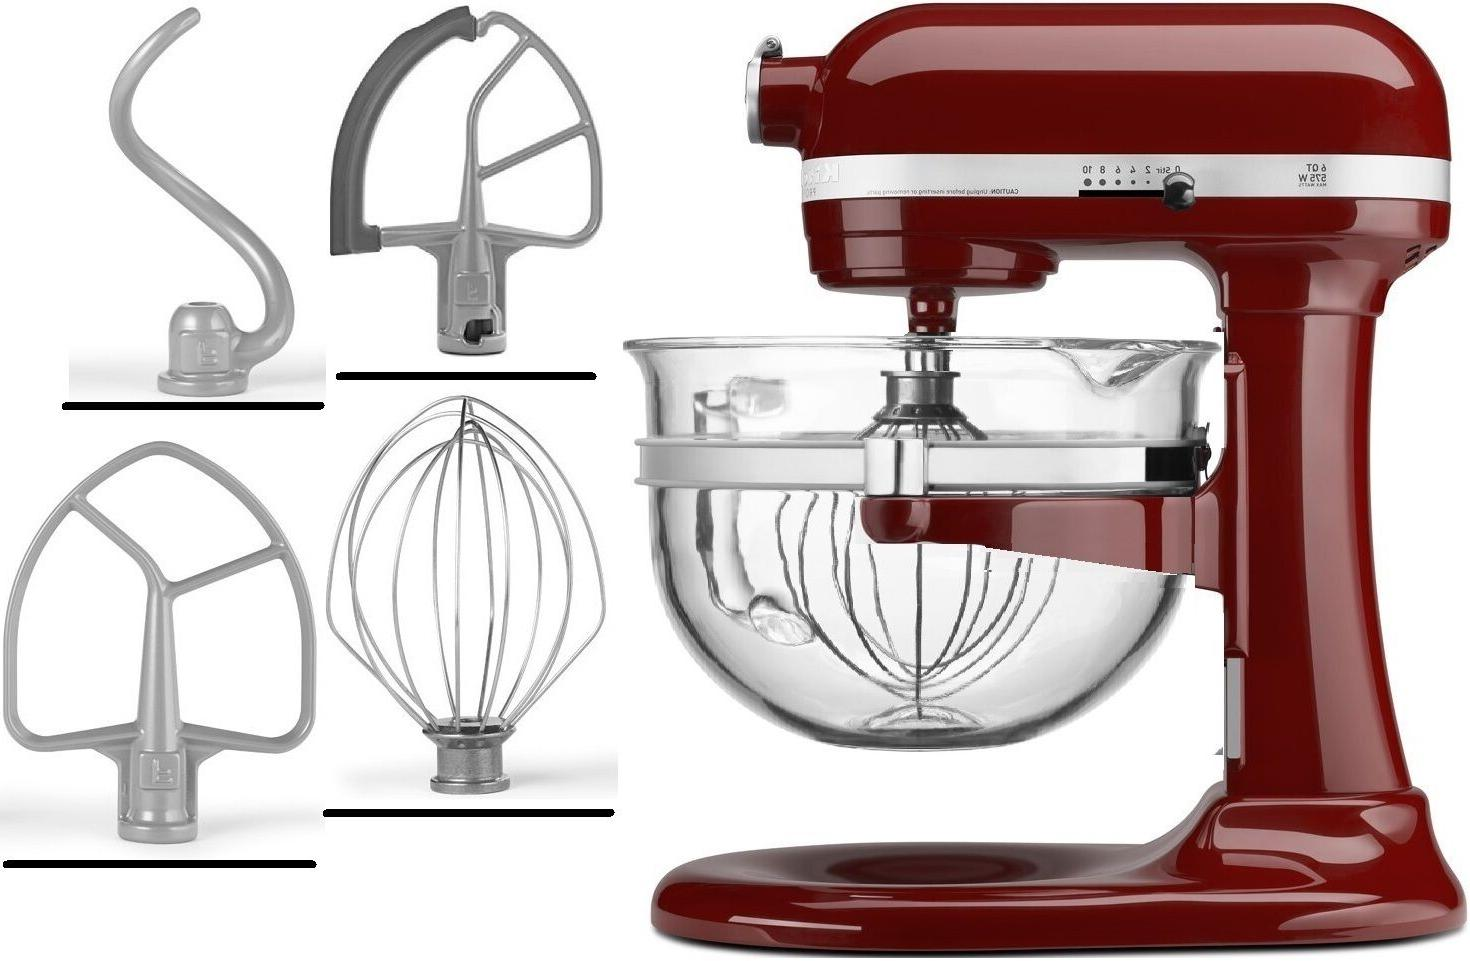 New Mixer KF26M2X Pro With Bowl Colors